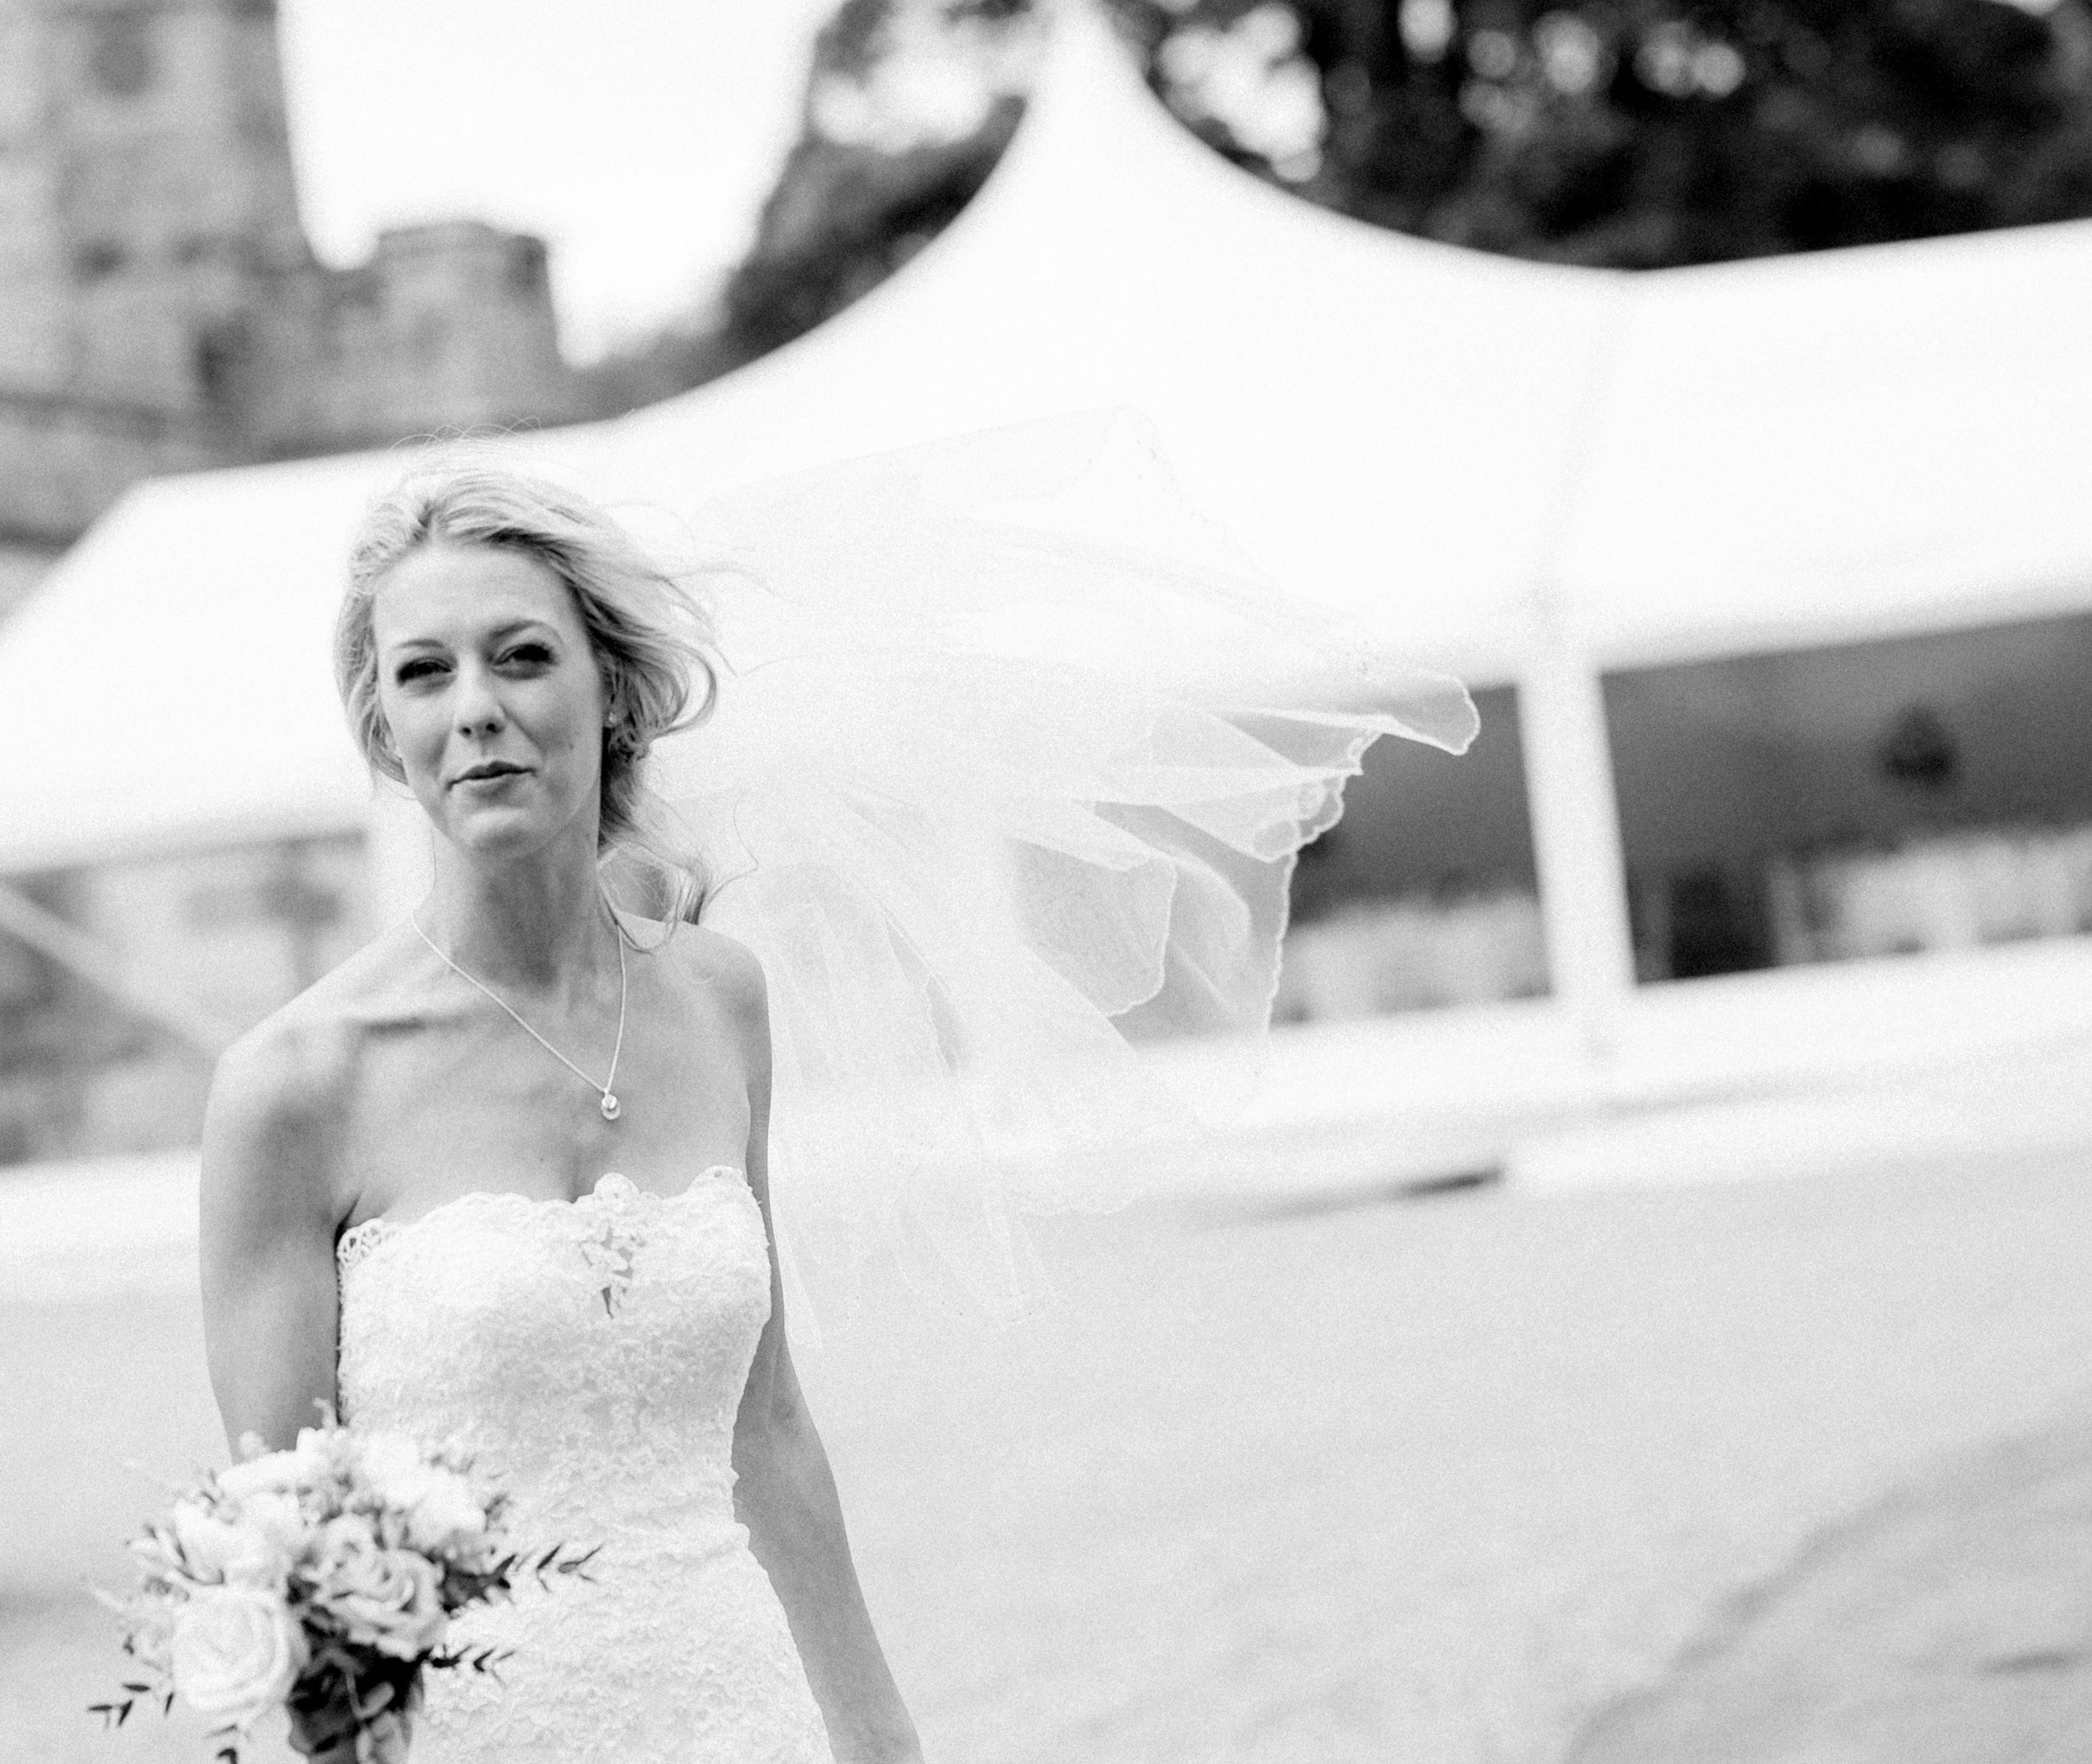 The unsuspecting bride caught in the wind